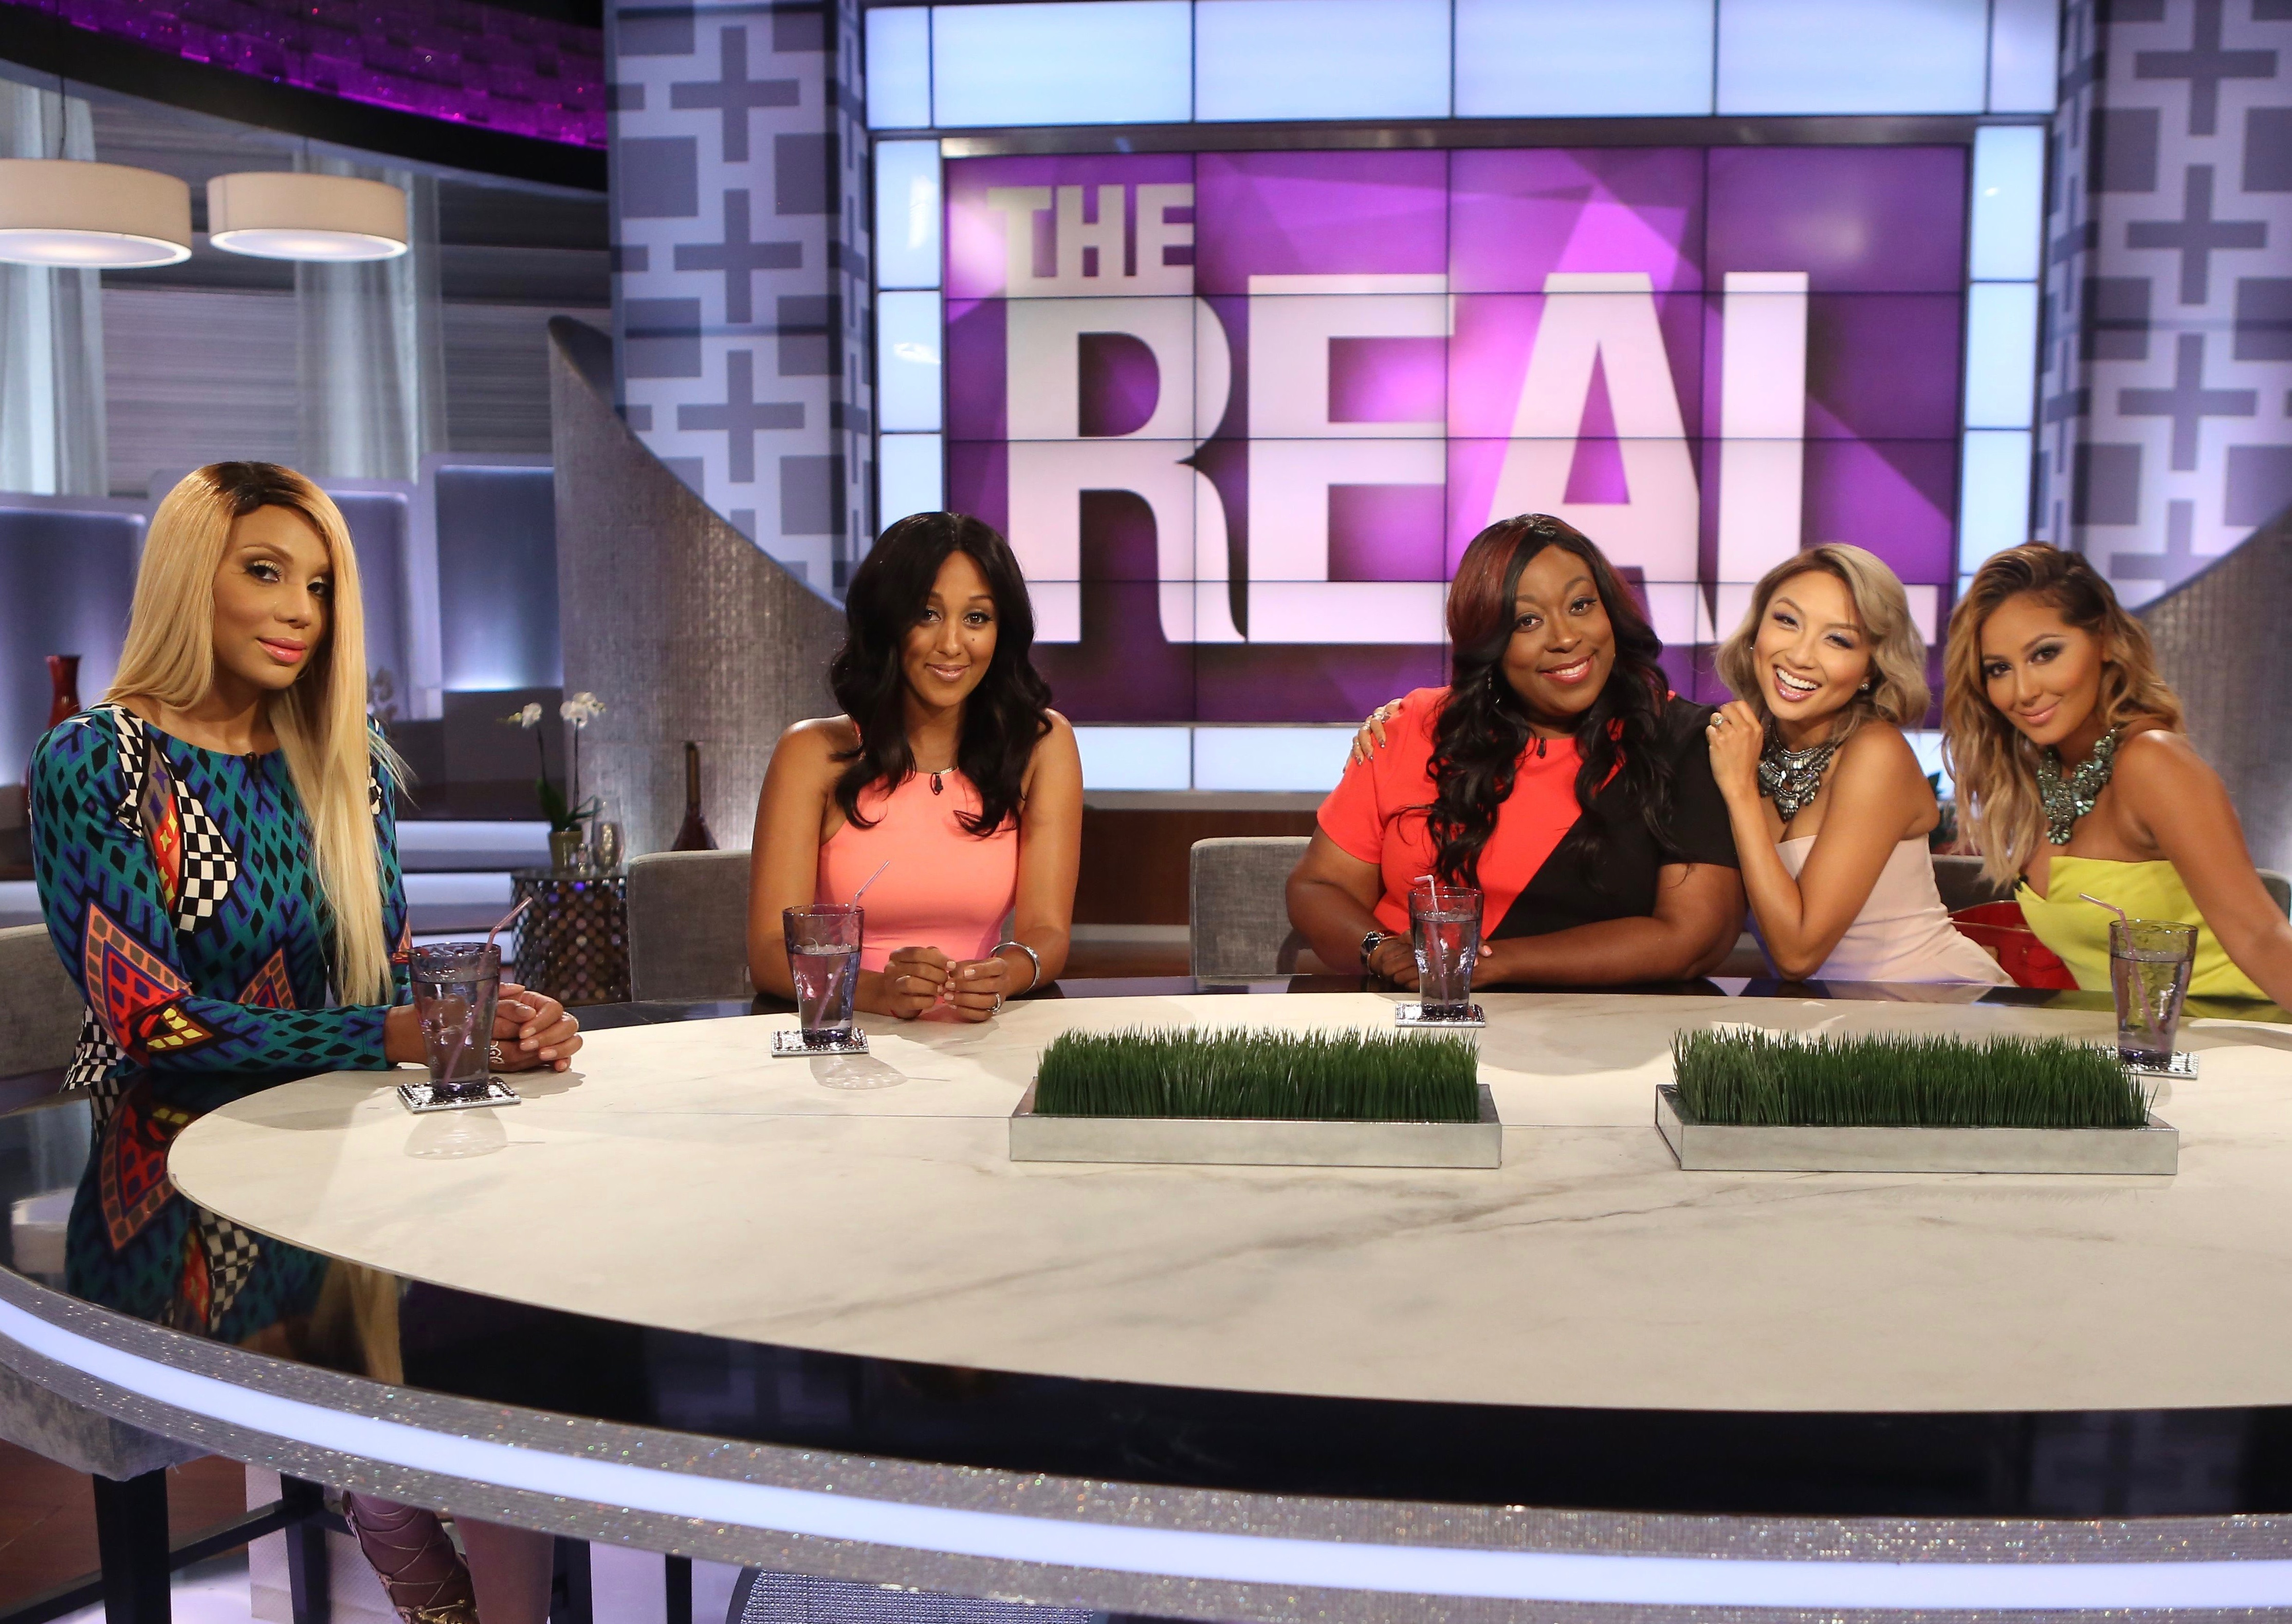 "This photo released by Warner Bros. shows, from left, Tamar Braxton, Tamera Mowry-Housley, Loni Love, Jeannie Mai, and Adrienne Bailon during the premiere episode of the new TV show, ""The Real."" The Warner Bros. show premieres on Monday, Sept. 15, 2014. (AP Photo/Warner Bros., Patrick Wymore)"